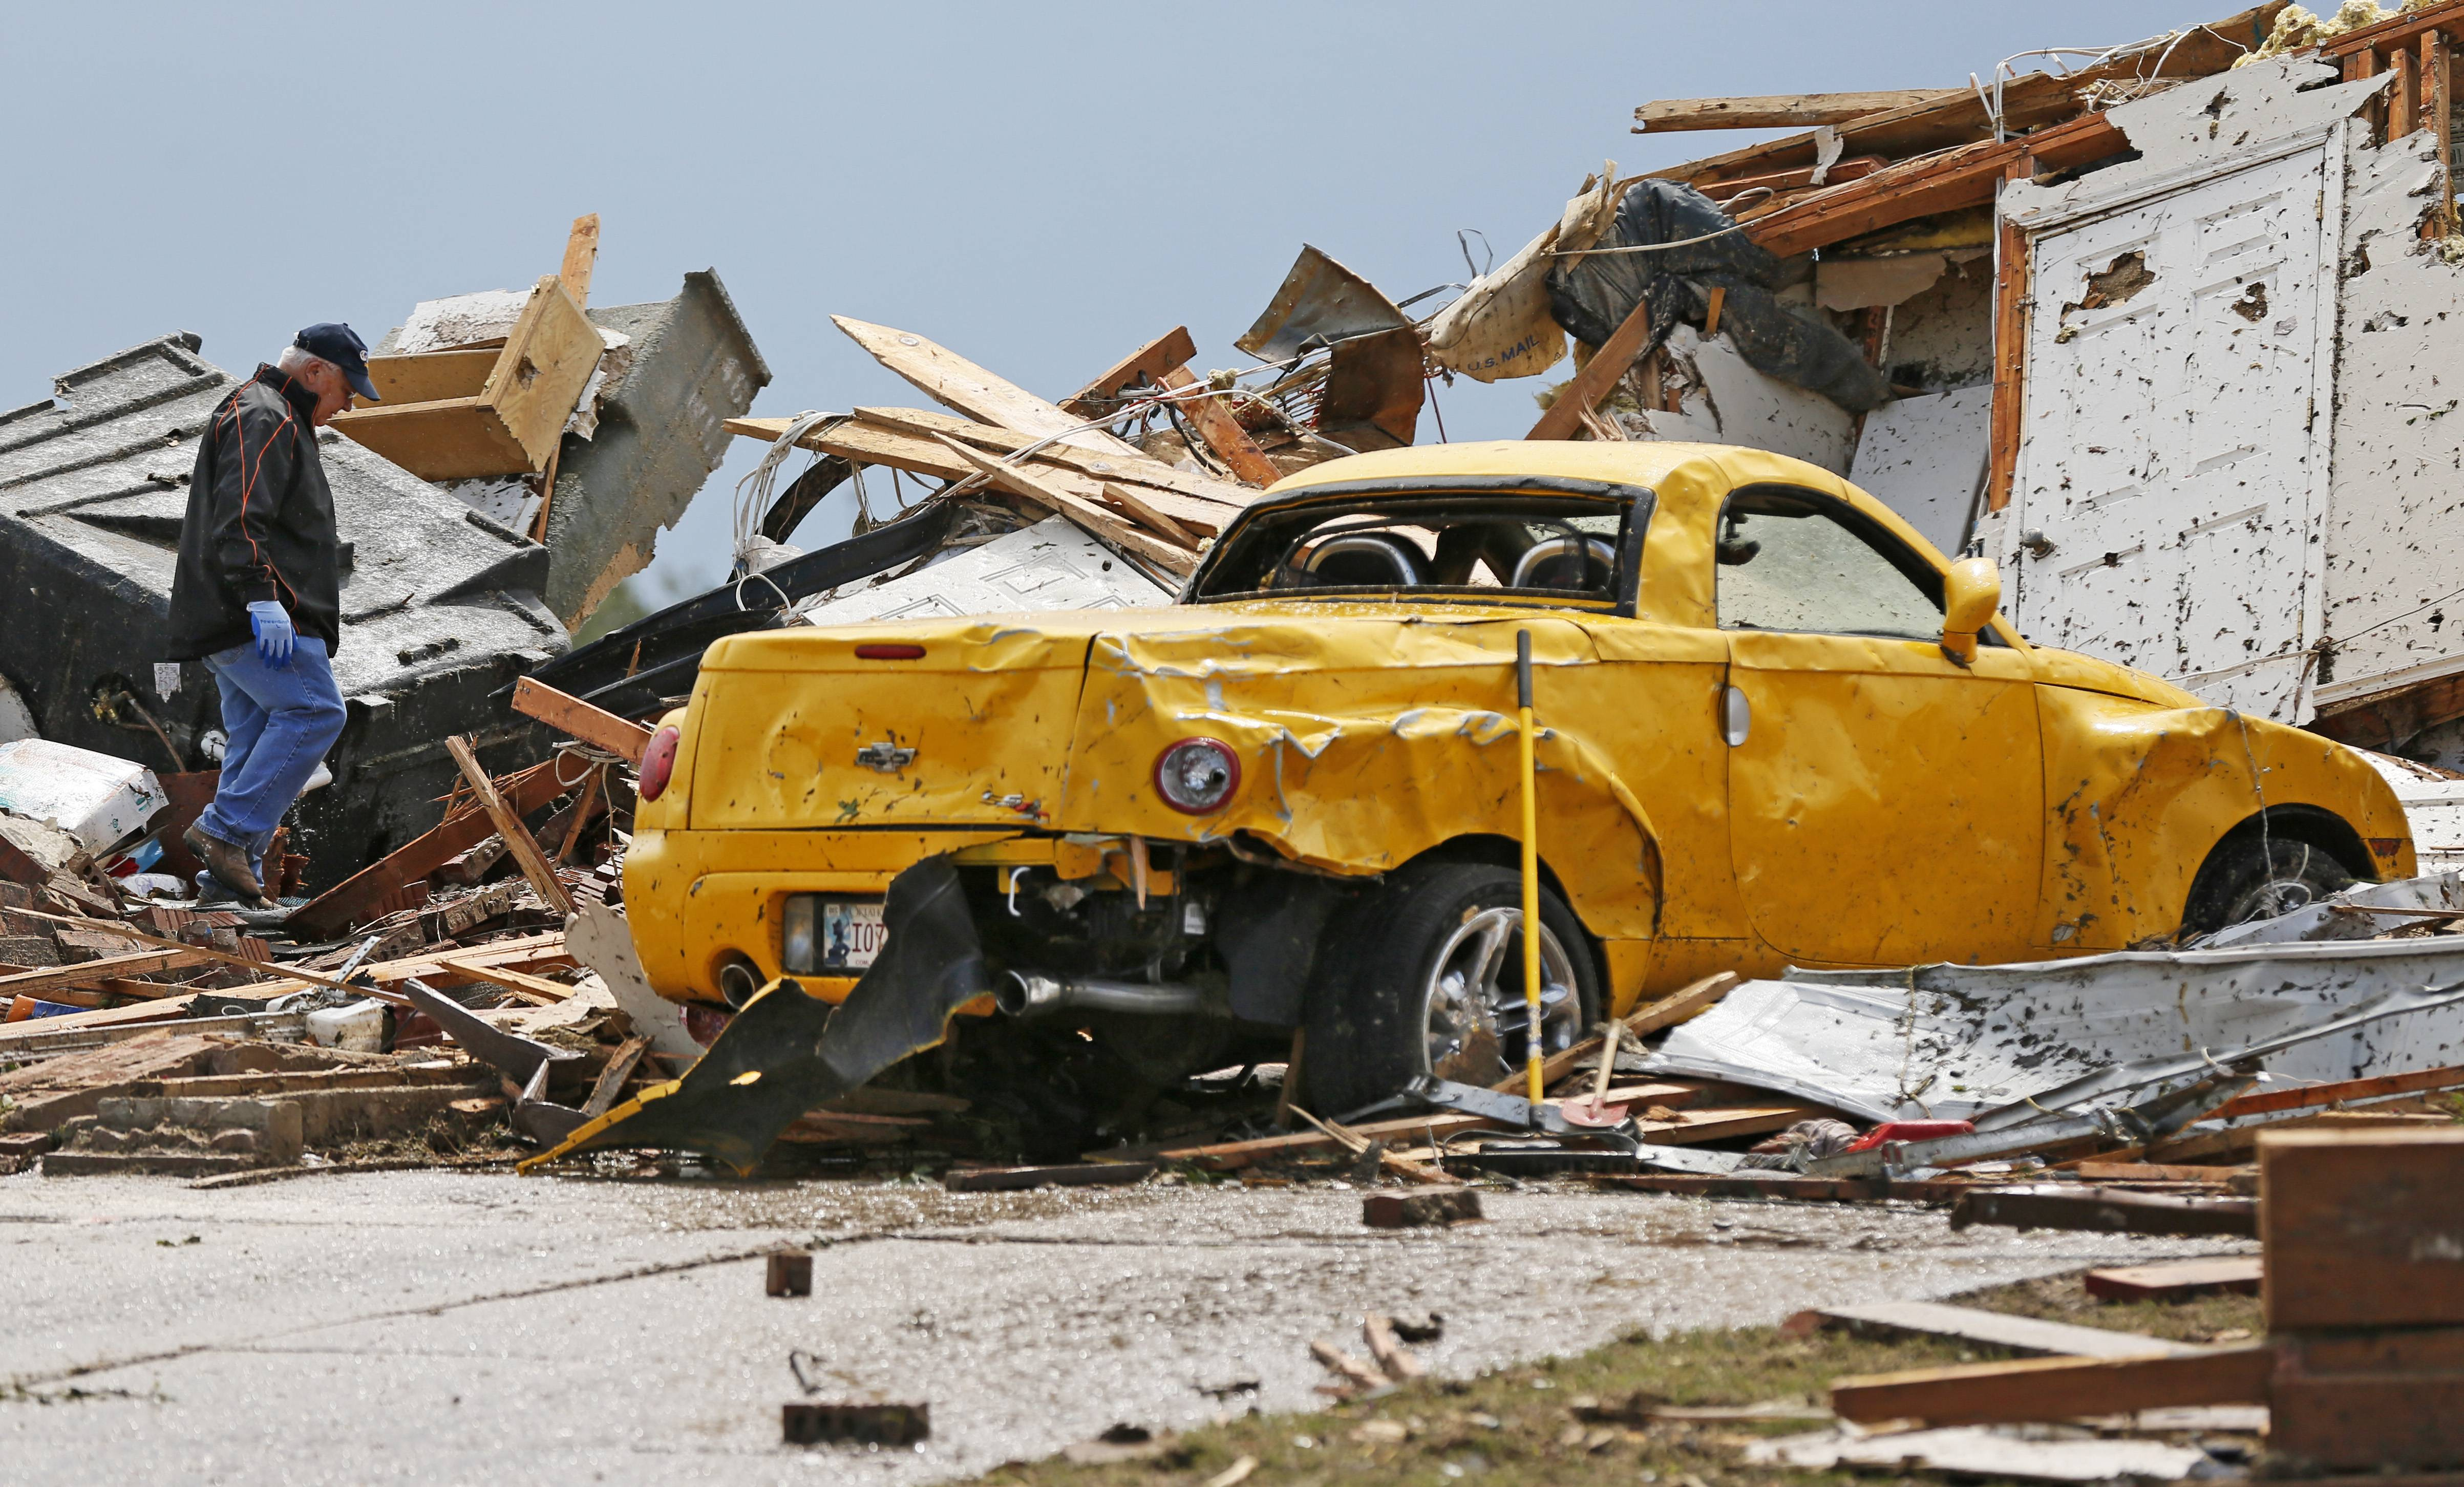 Hugh Harrell walks through debris near his 2005 Chevy SSR at the house of his daughter, Kaci Harrell, 14708 S. Broadway, in Oklahoma City on Tuesday, May 21, 2013, after a tornado struck south Oklahoma City and Moore, Okla., on Monday. Hugh Harrell had the car parked in his daughter's garage to protect it from hail.